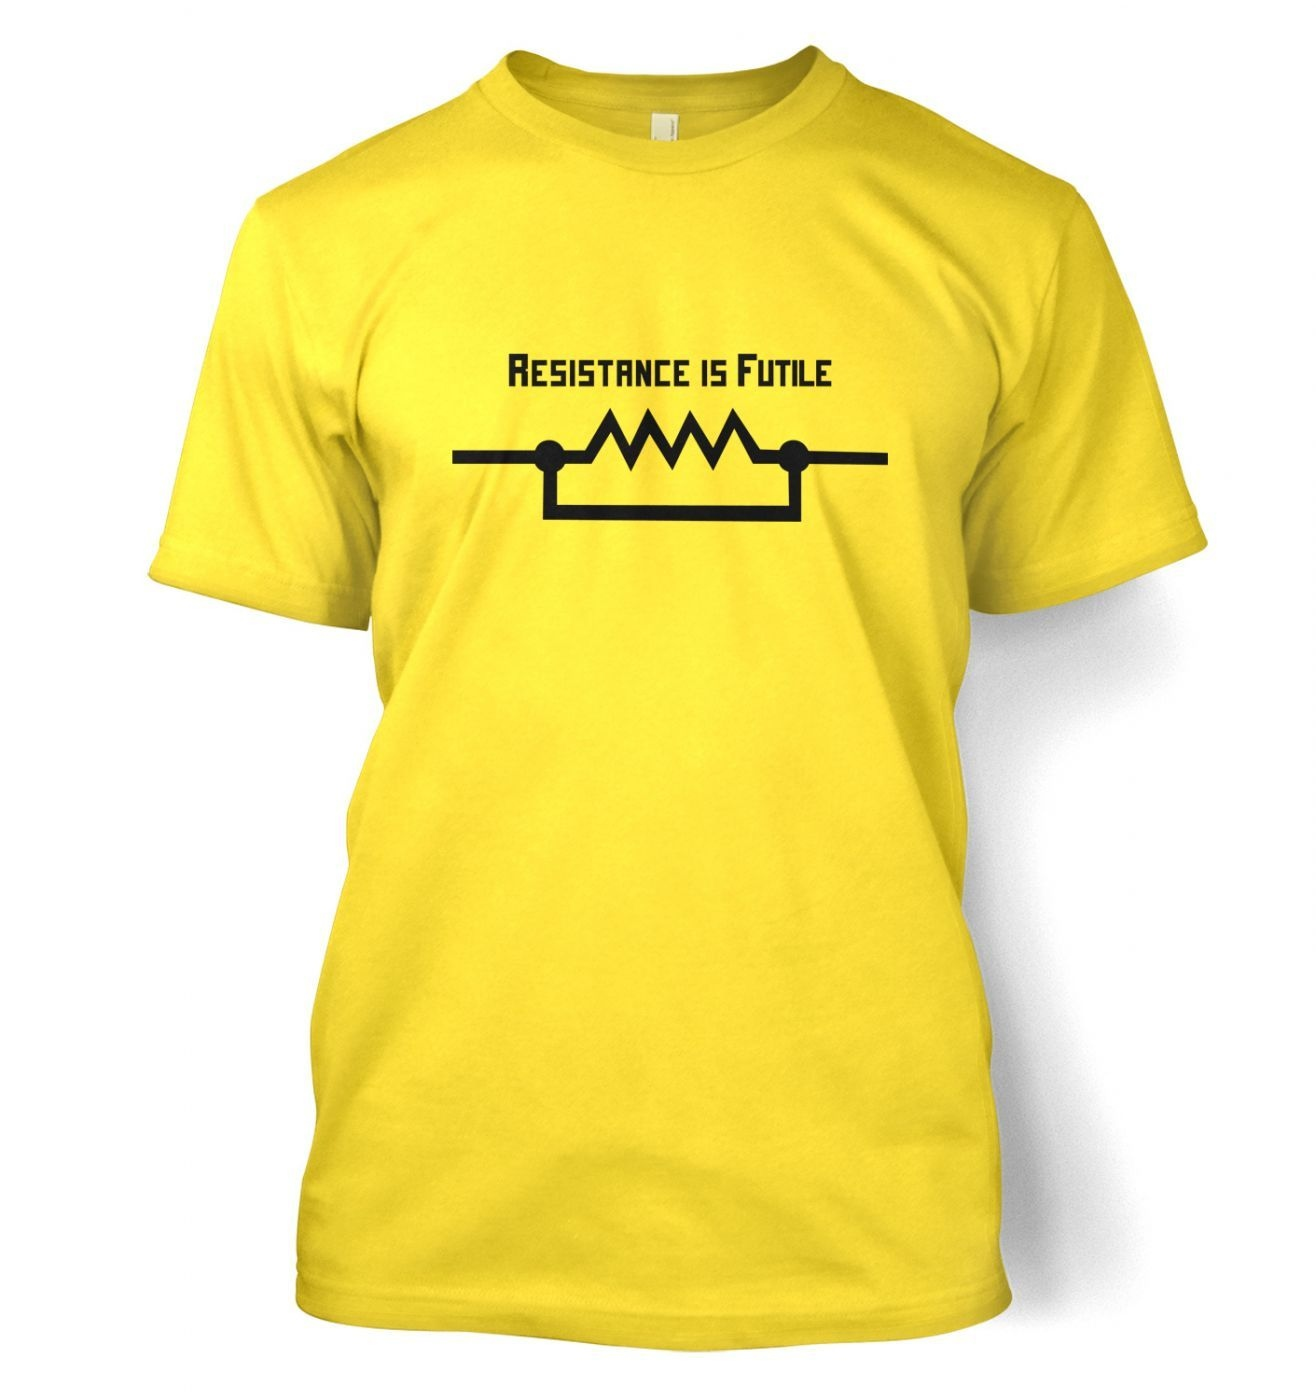 Resistance Is Futile (US) men's t-shirt